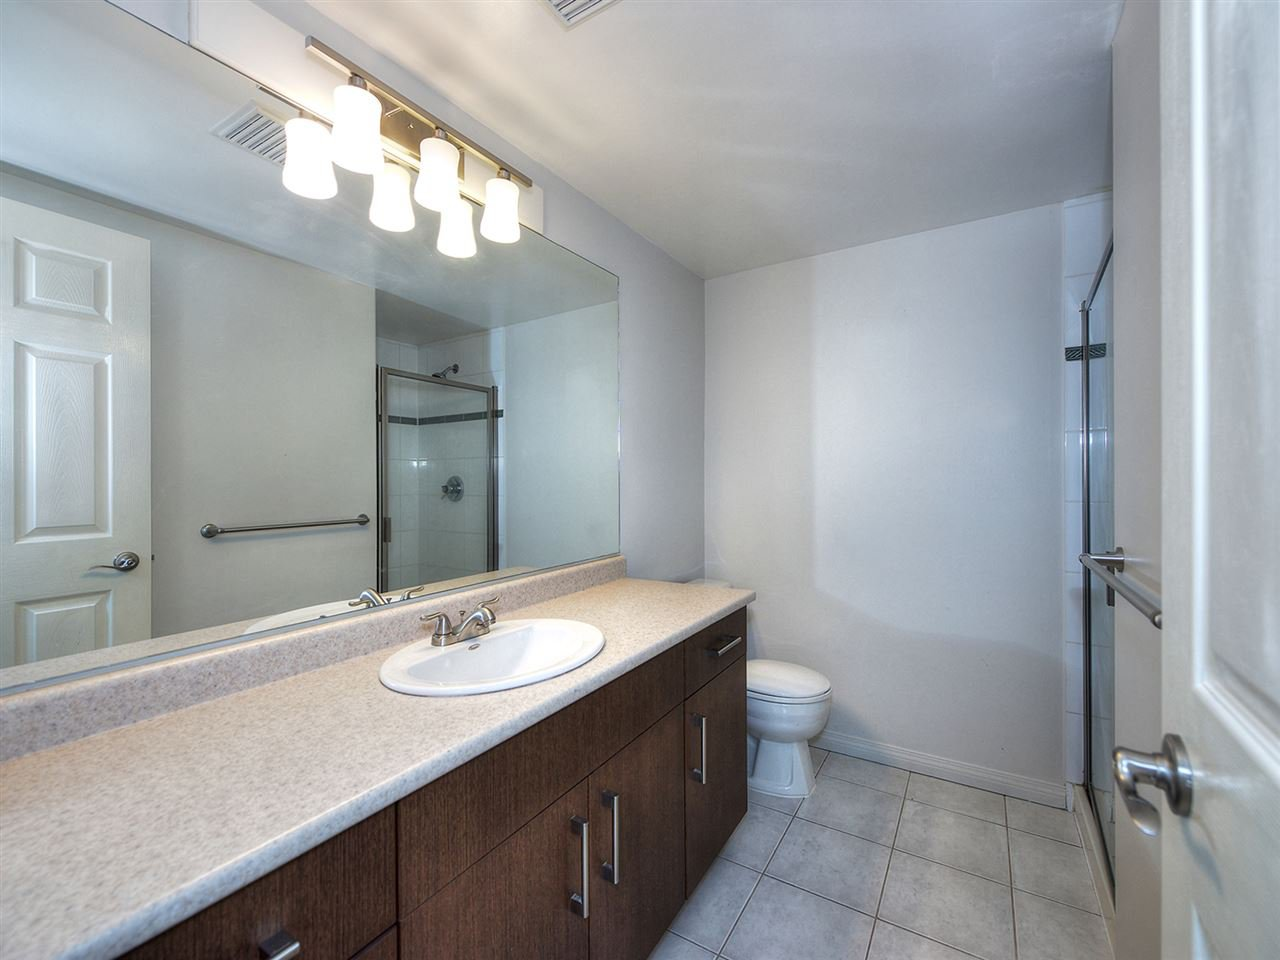 Photo 12: Photos: 203 4768 53 STREET in Delta: Delta Manor Condo for sale (Ladner)  : MLS®# R2202745